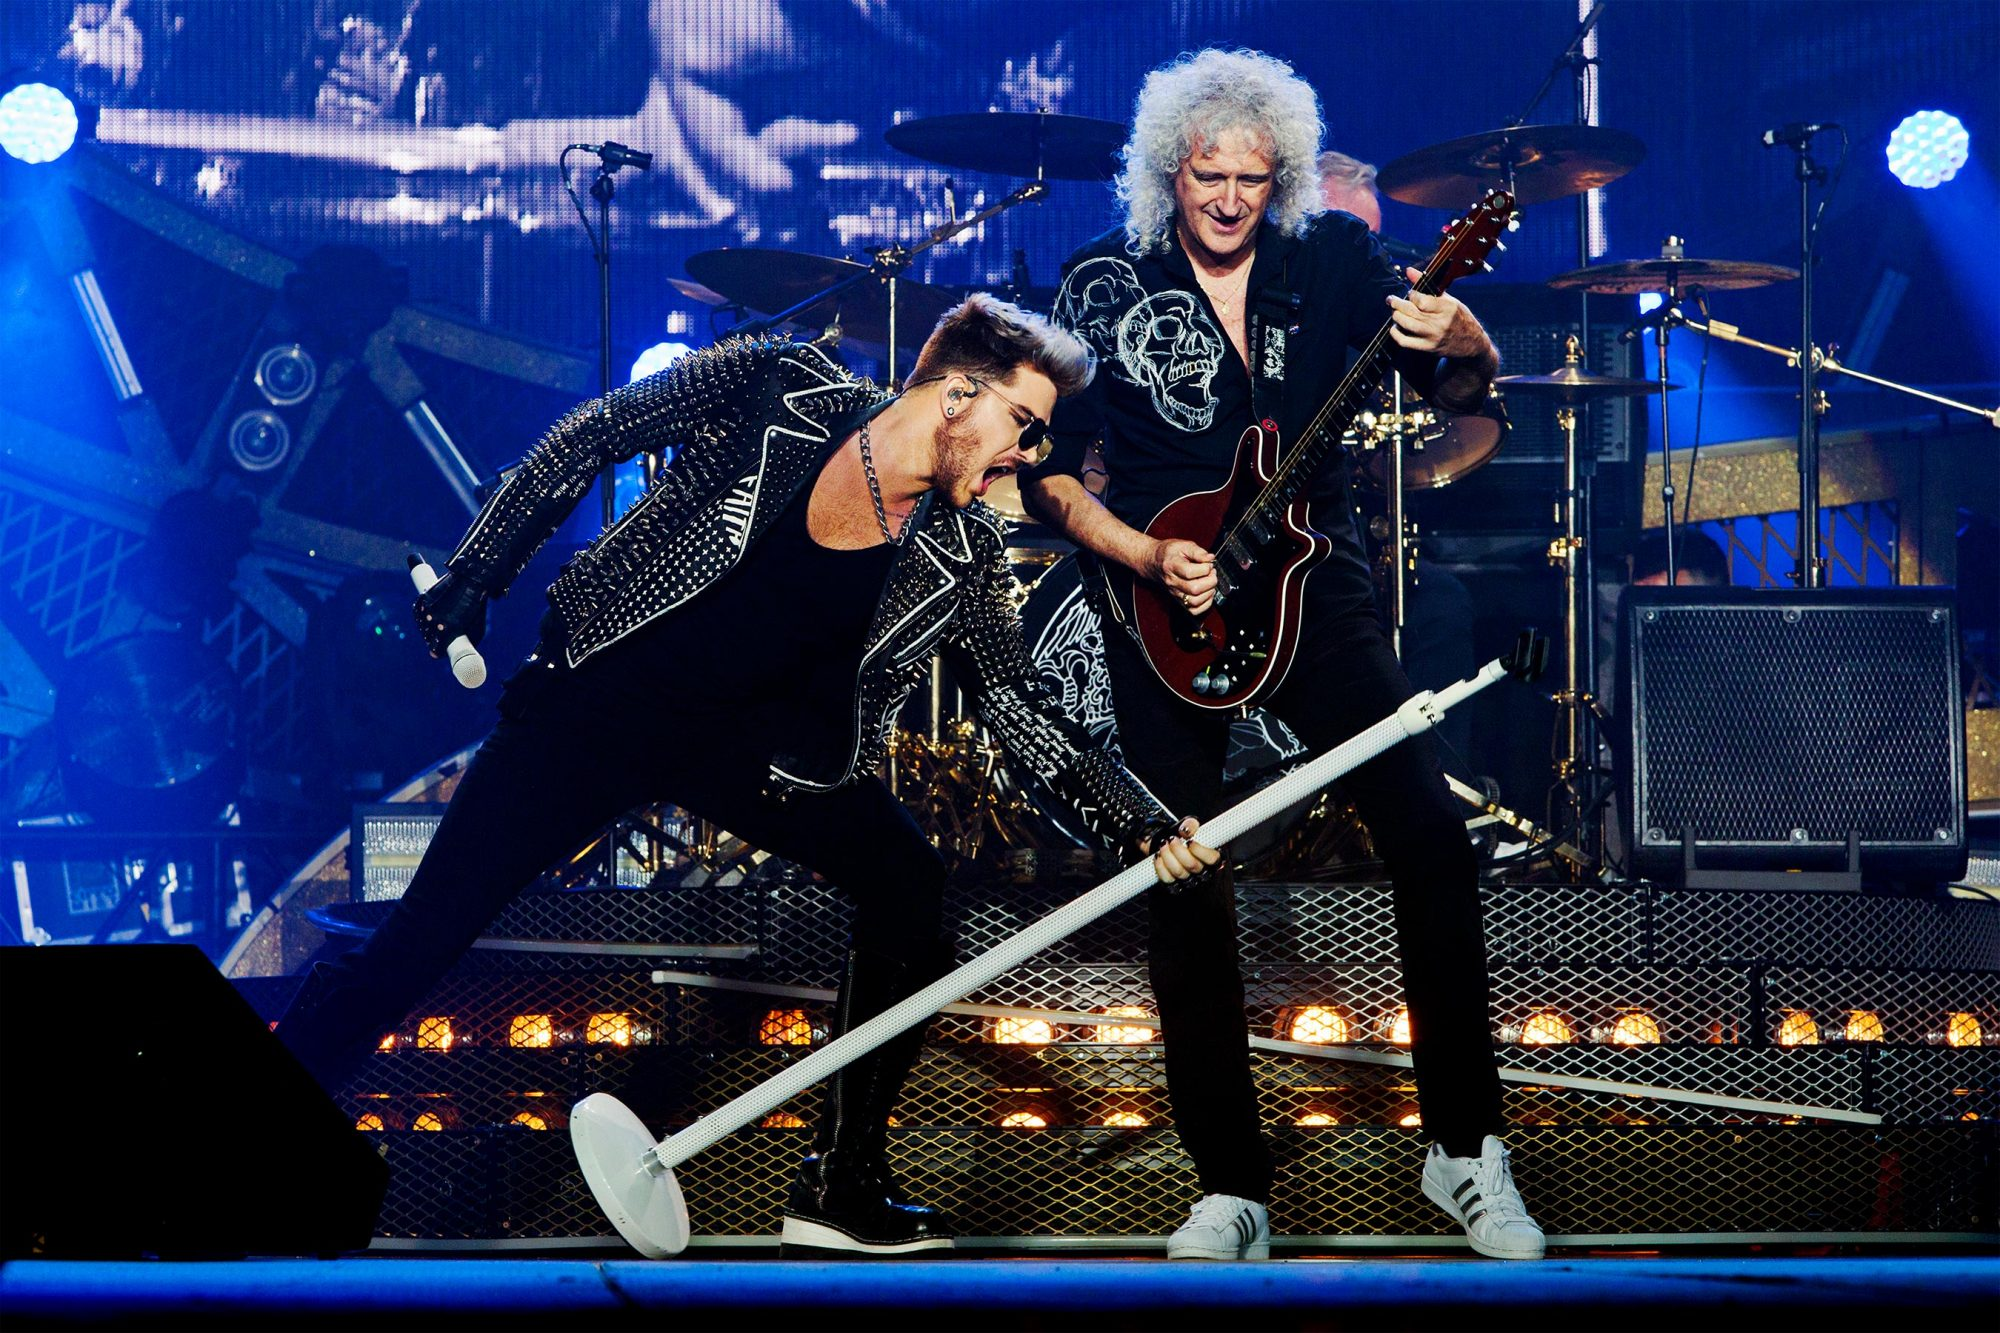 """THE SHOW MUST GO ON: THE QUEEN + ADAM LAMBERT STORY - On the heels of Queen and Adam Lambert's show-stopping opening performance at the Oscars on Sunday, February 24, Lincoln Square Productions has acquired the U.S. television rights to a documentary from Miracle Productions on the iconic band and their new regular frontman, Adam Lambert. Produced by Jim Beach and acclaimed writer and filmmaker Simon Lupton, """"The Show Must Go On: The Queen + Adam Lambert Story"""" airs MONDAY, APRIL 29 (8:00 - 10:00 p.m. ET) on the ABC Television Network, prior to Queen and Lambert's already sold-out July/August 2019 U.S. """"Rhapsody"""" tour. (Miracle Productions) ADAM LAMBERT, QUEEN"""